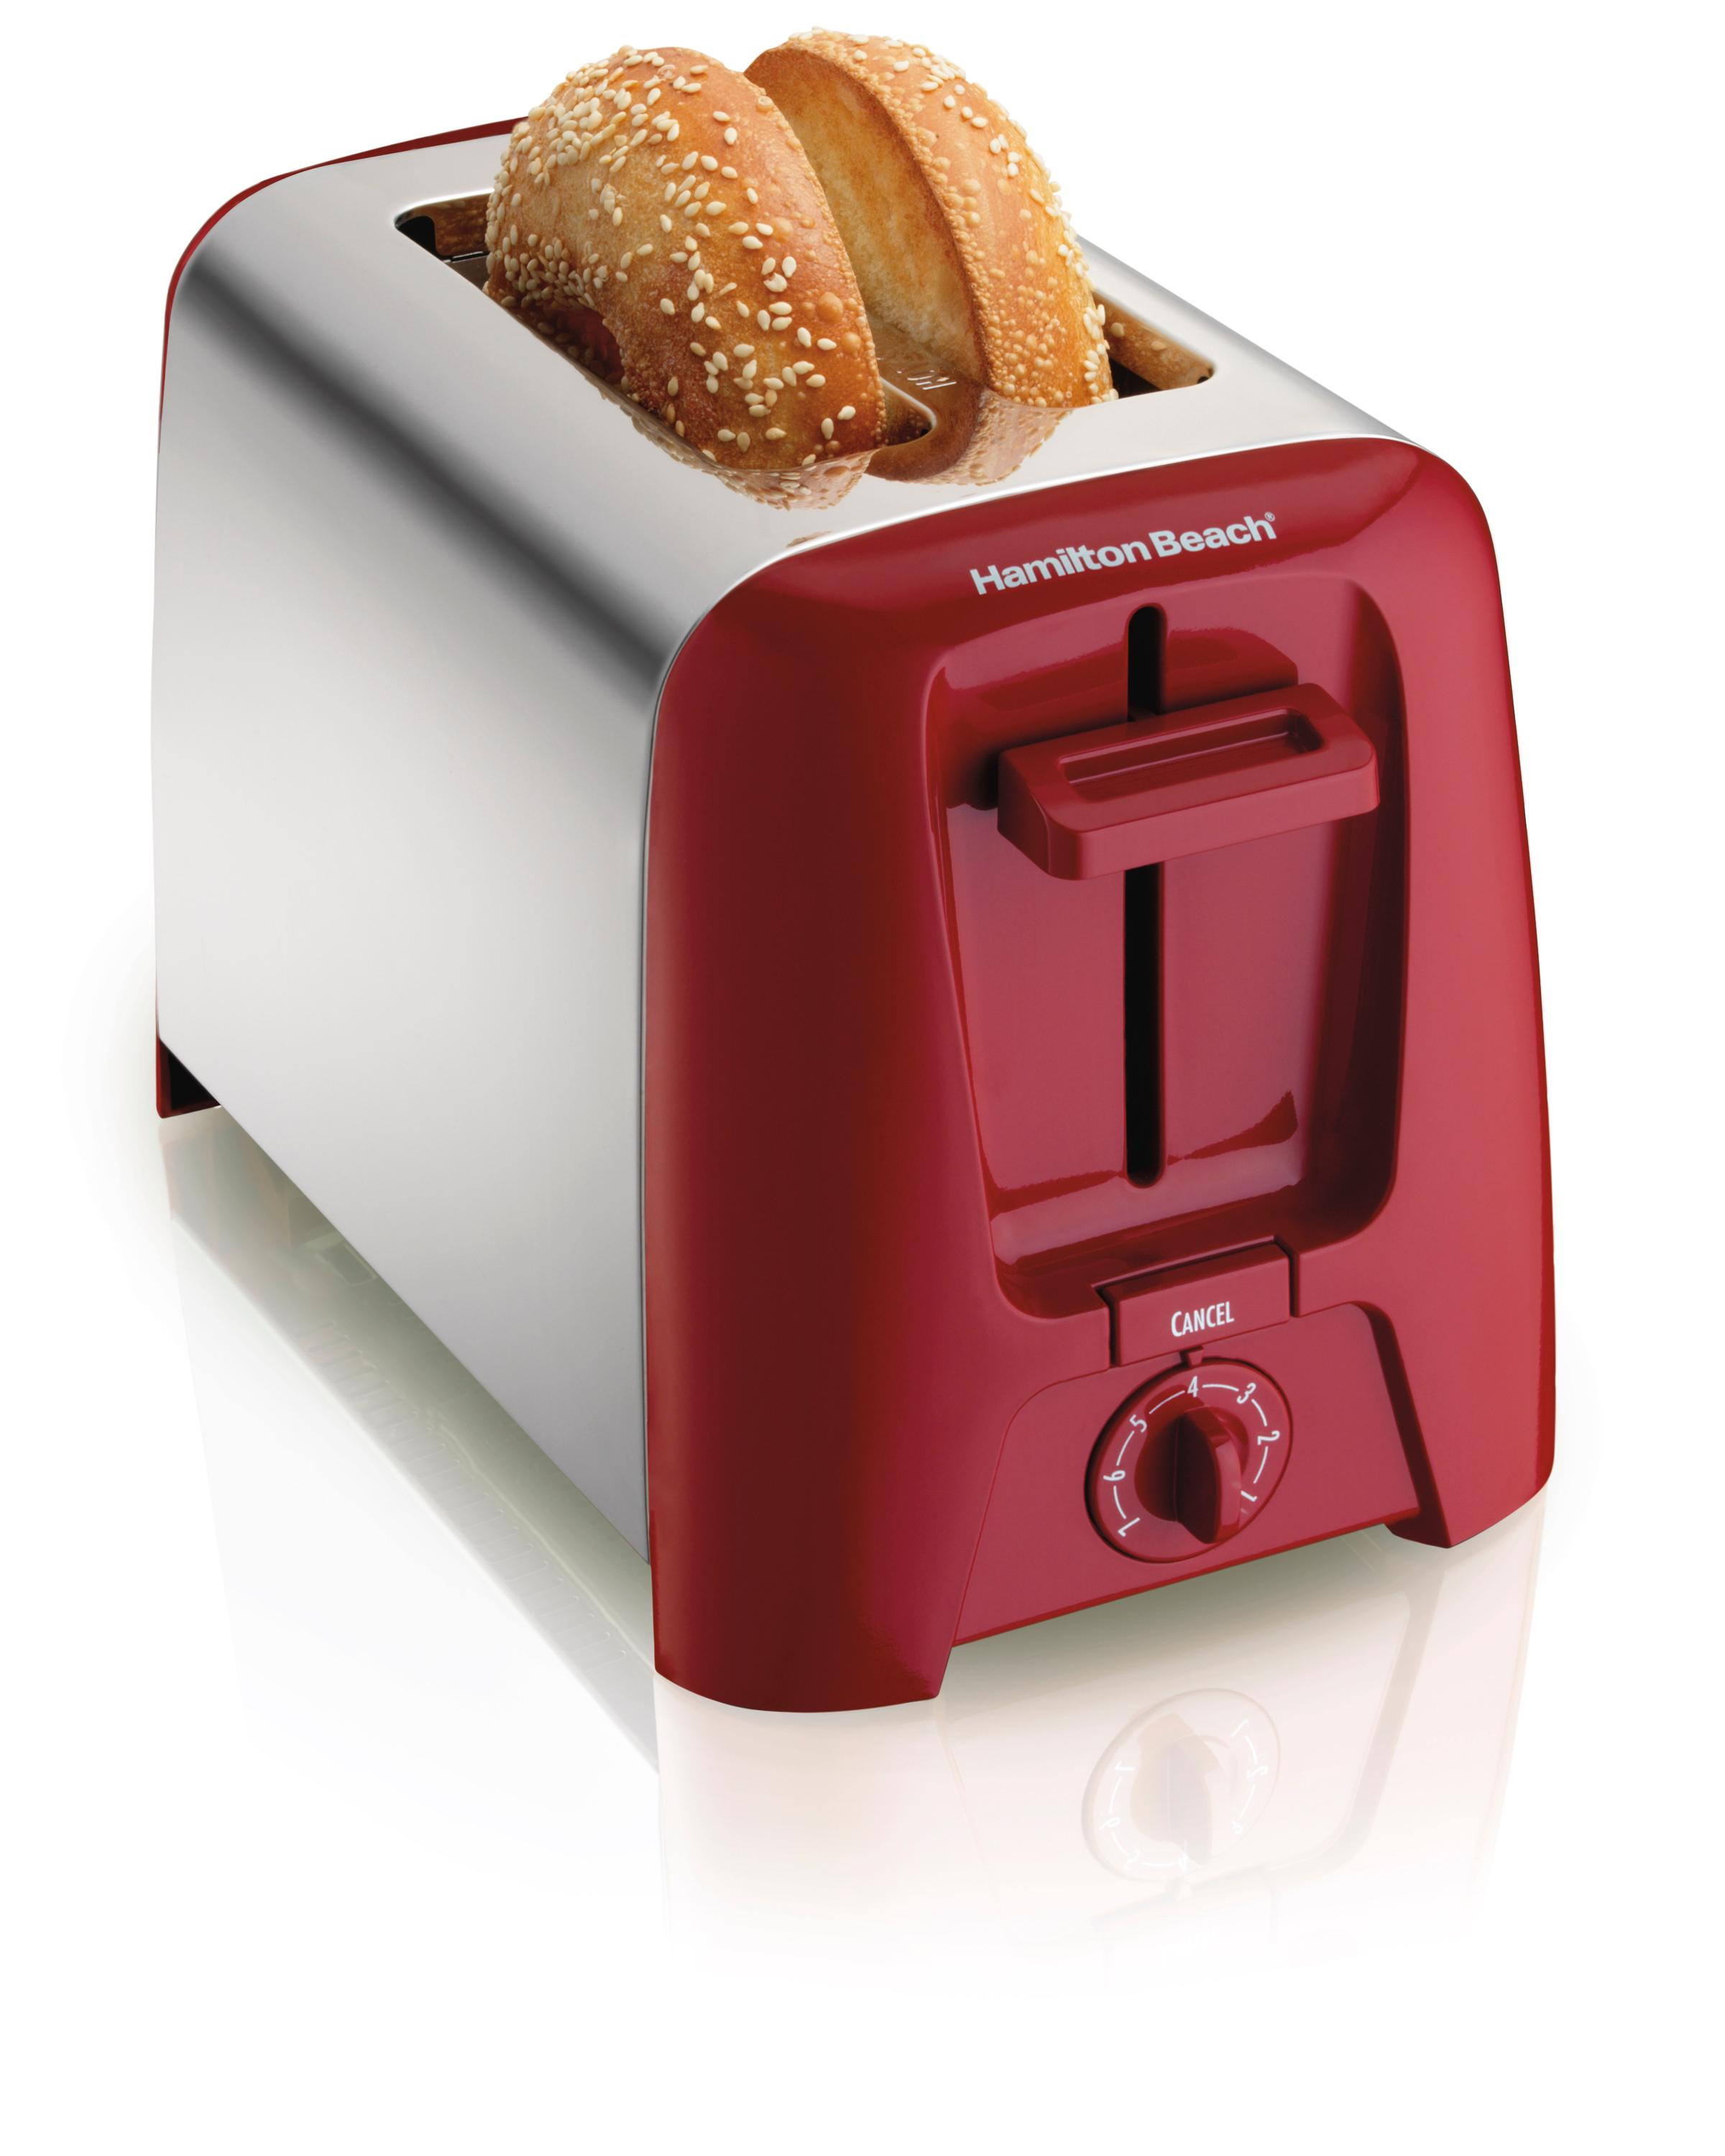 Hamilton Beach Cool Wall 2 Slice Toaster Red Auto Shut Off Chrome Exterior Ebay